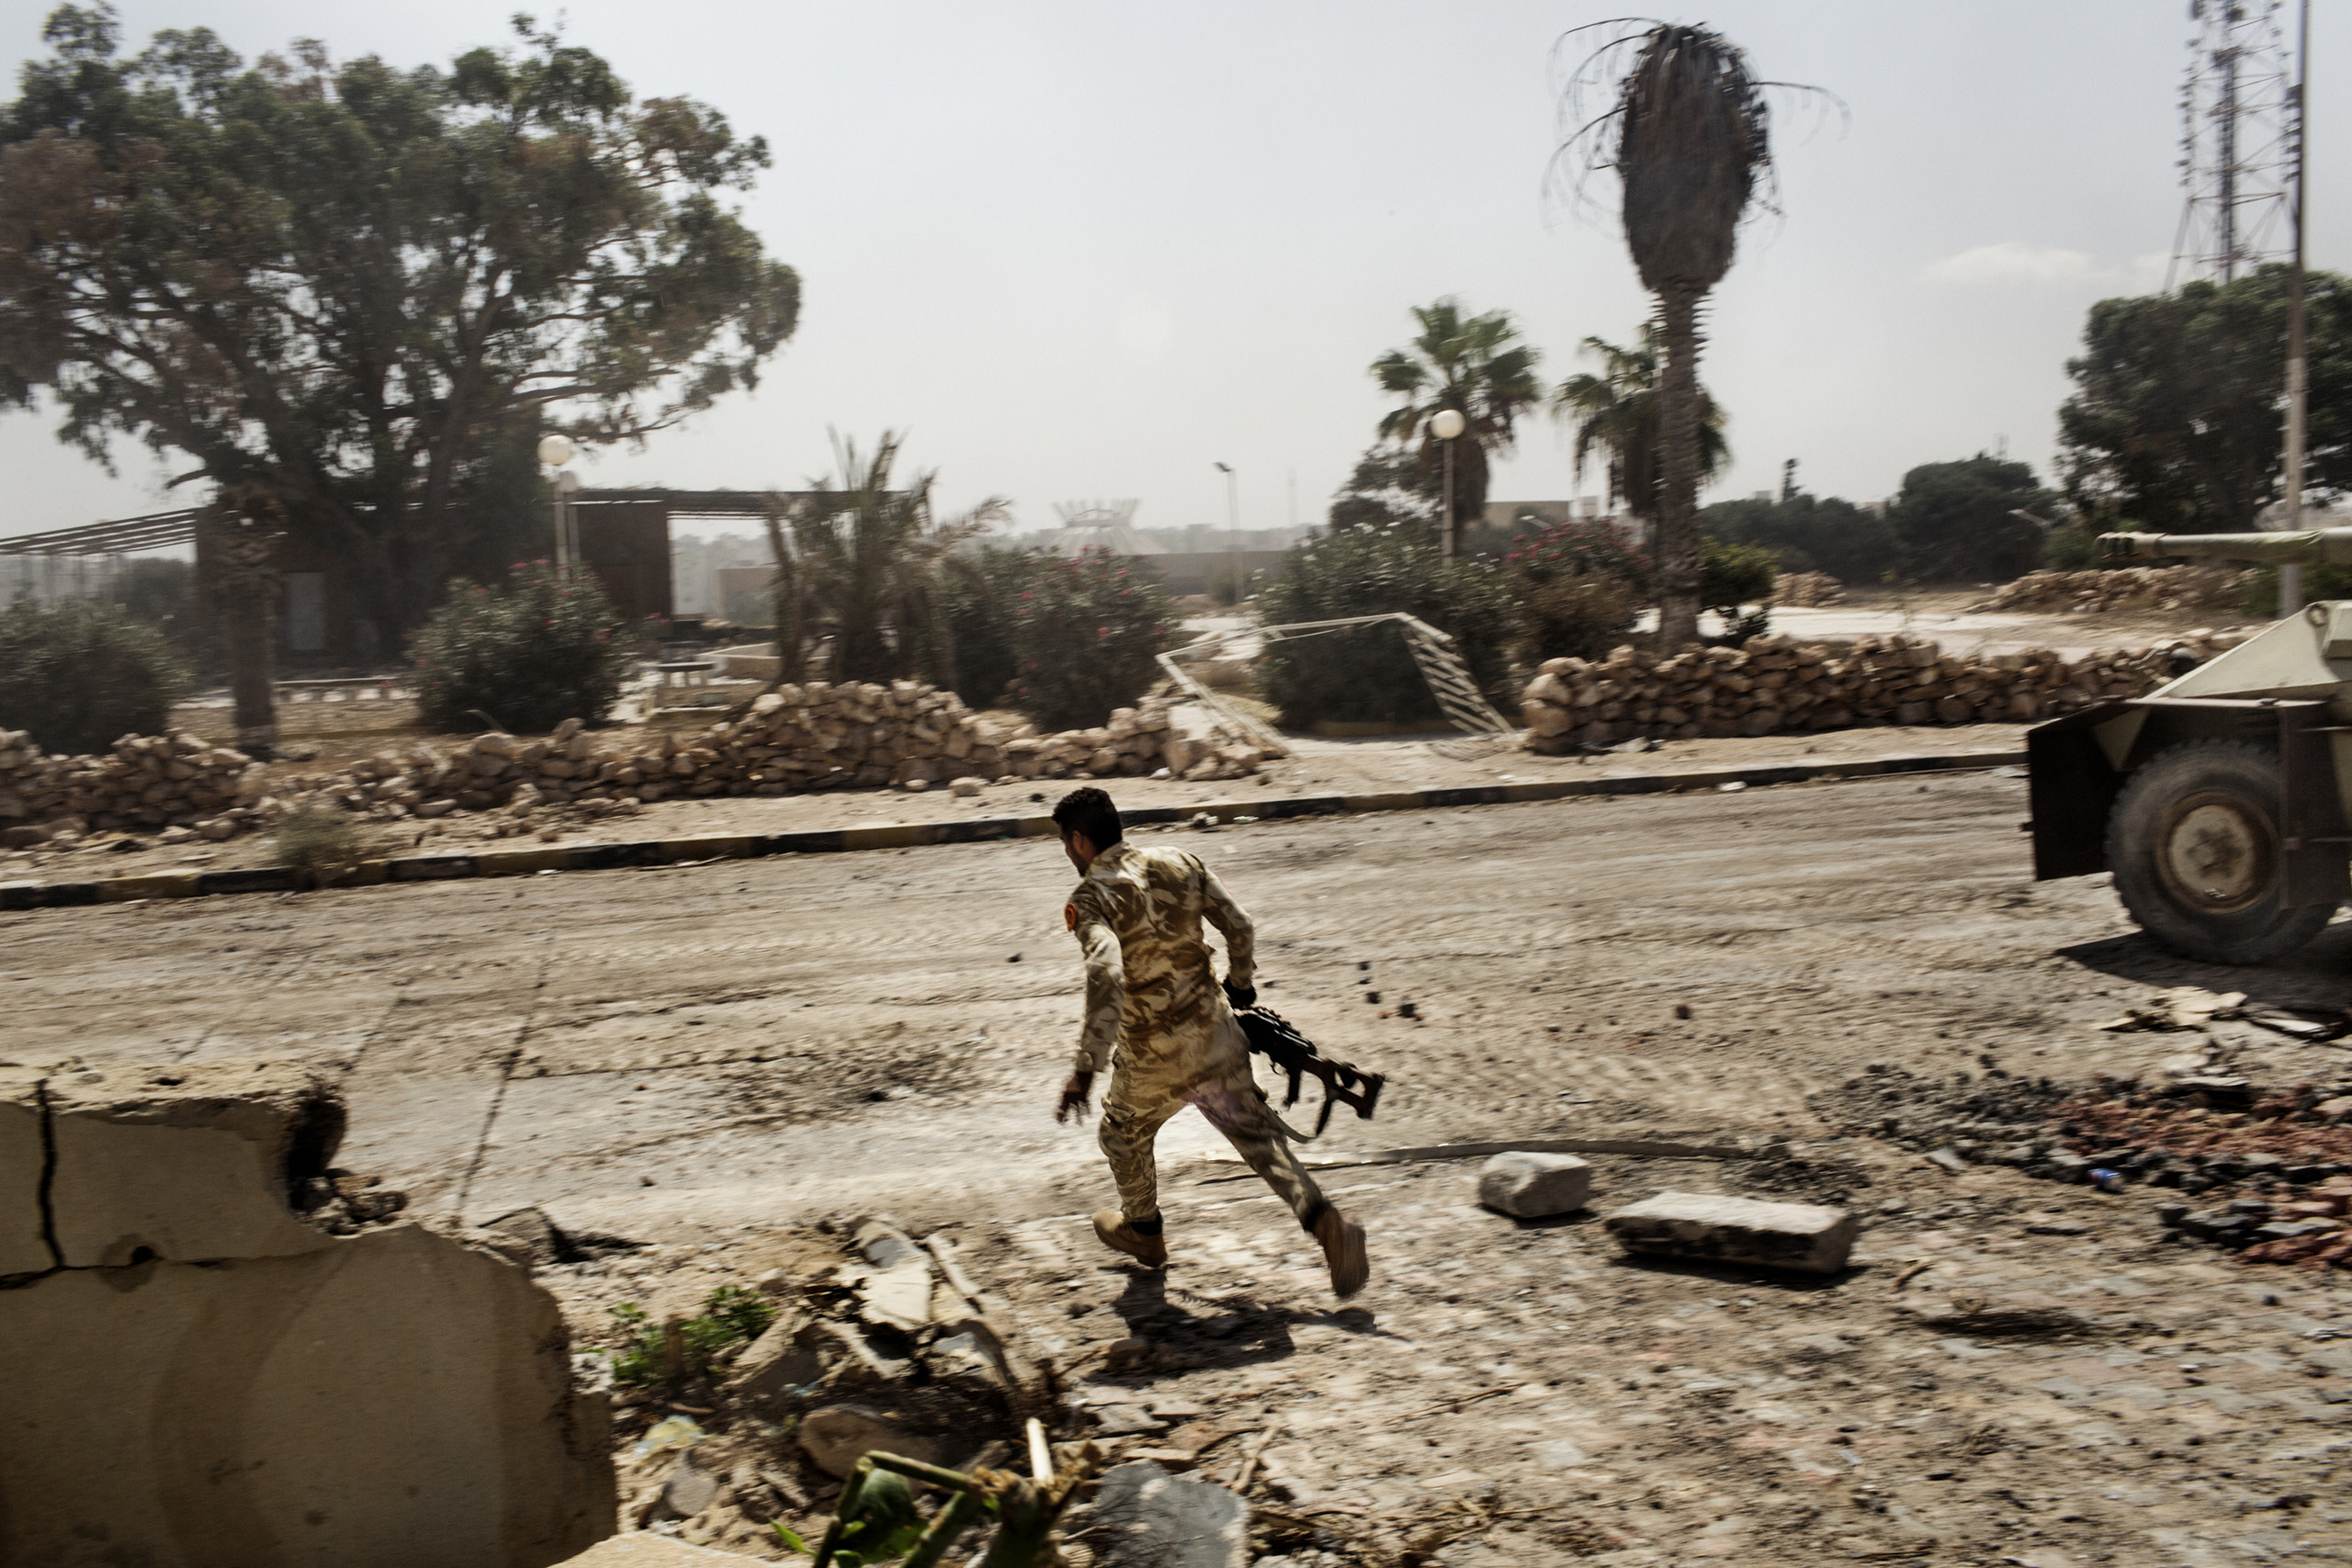 A Libyan fighter affiliated with forces of the Tripoli government runs for cover while fighting against Islamic State positions in Sirte, Libya, Sept. 22, 2016.